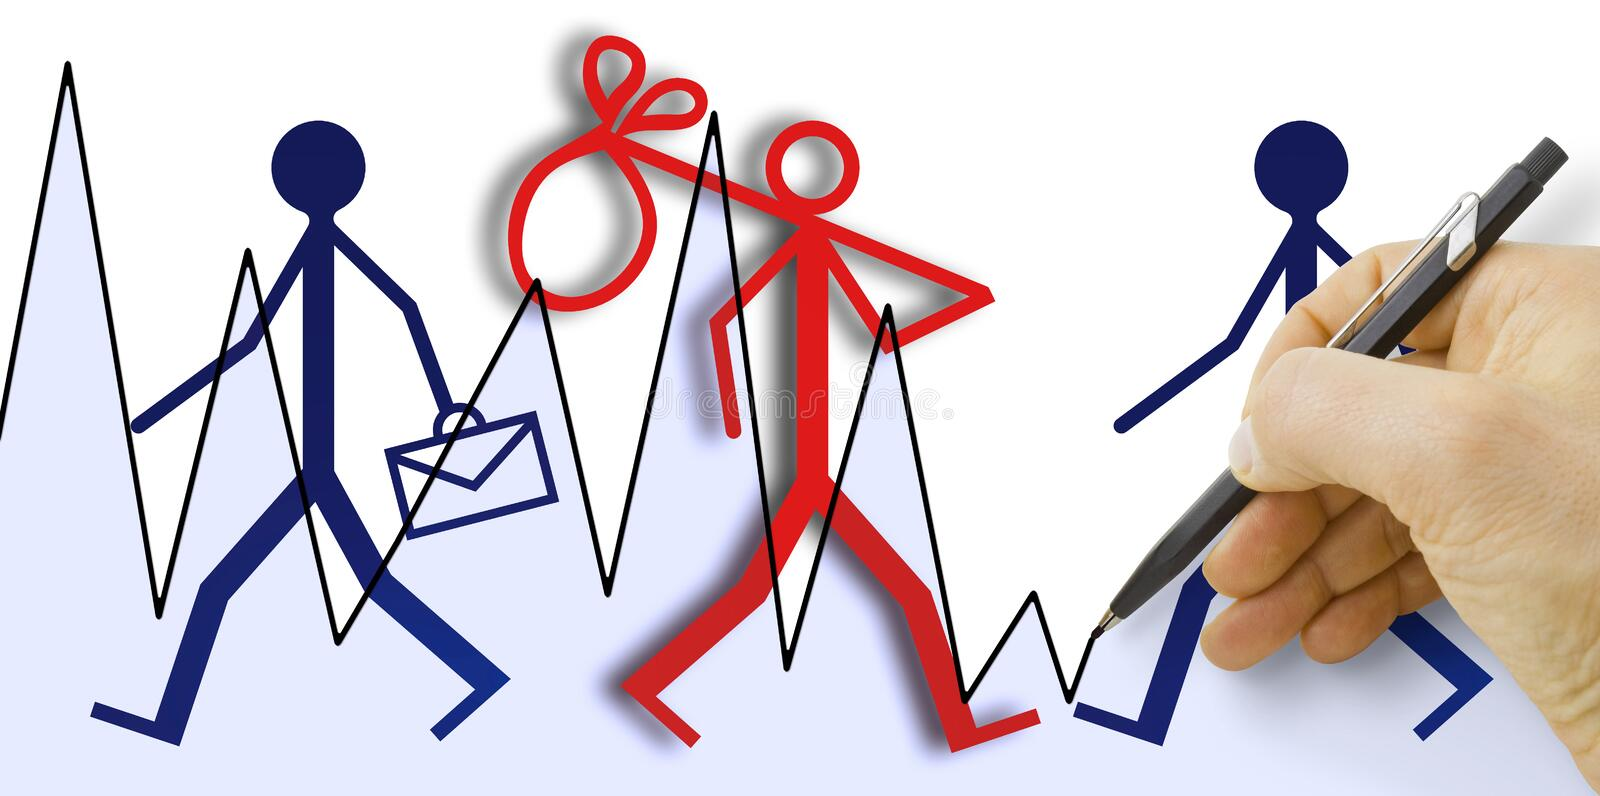 Hand drawing a chart about employment and unemployment trends  - concept image.  stock images